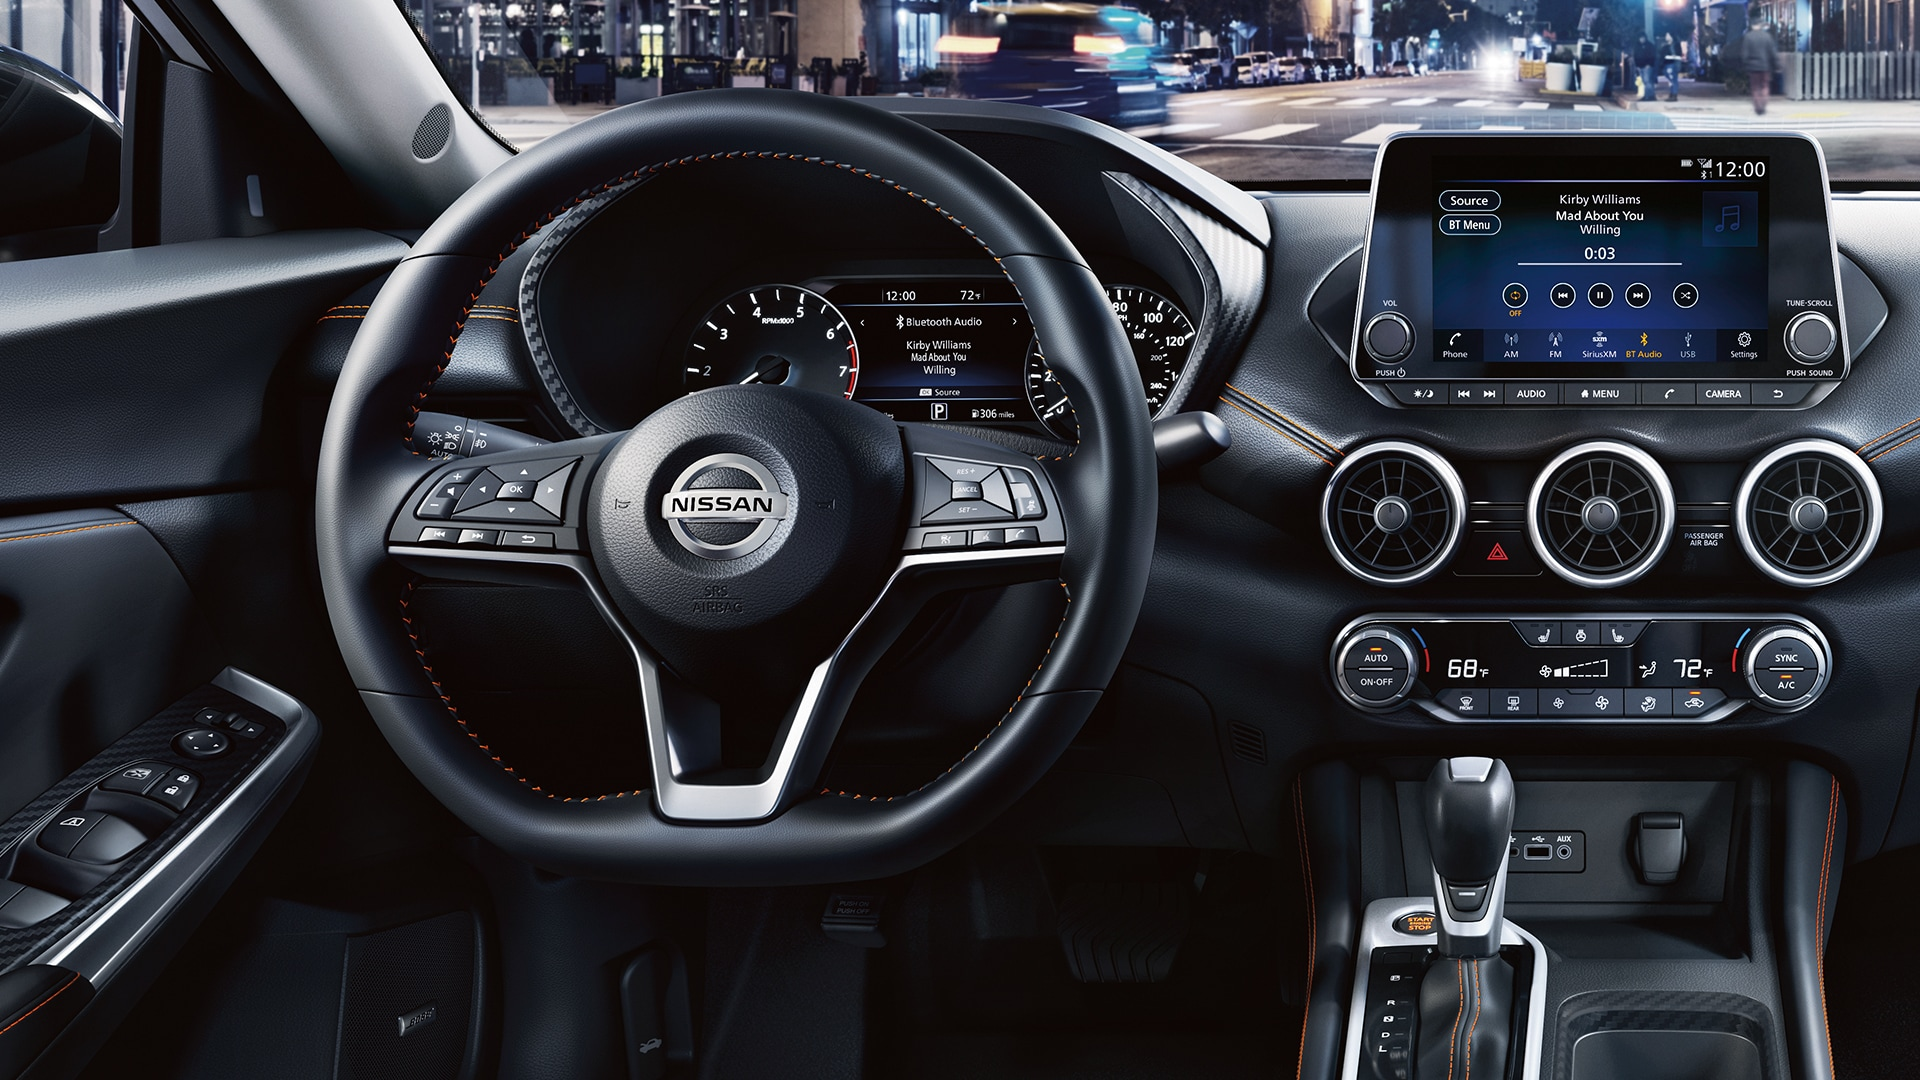 In the Driver's Seat of the 2020 Nissan Sentra